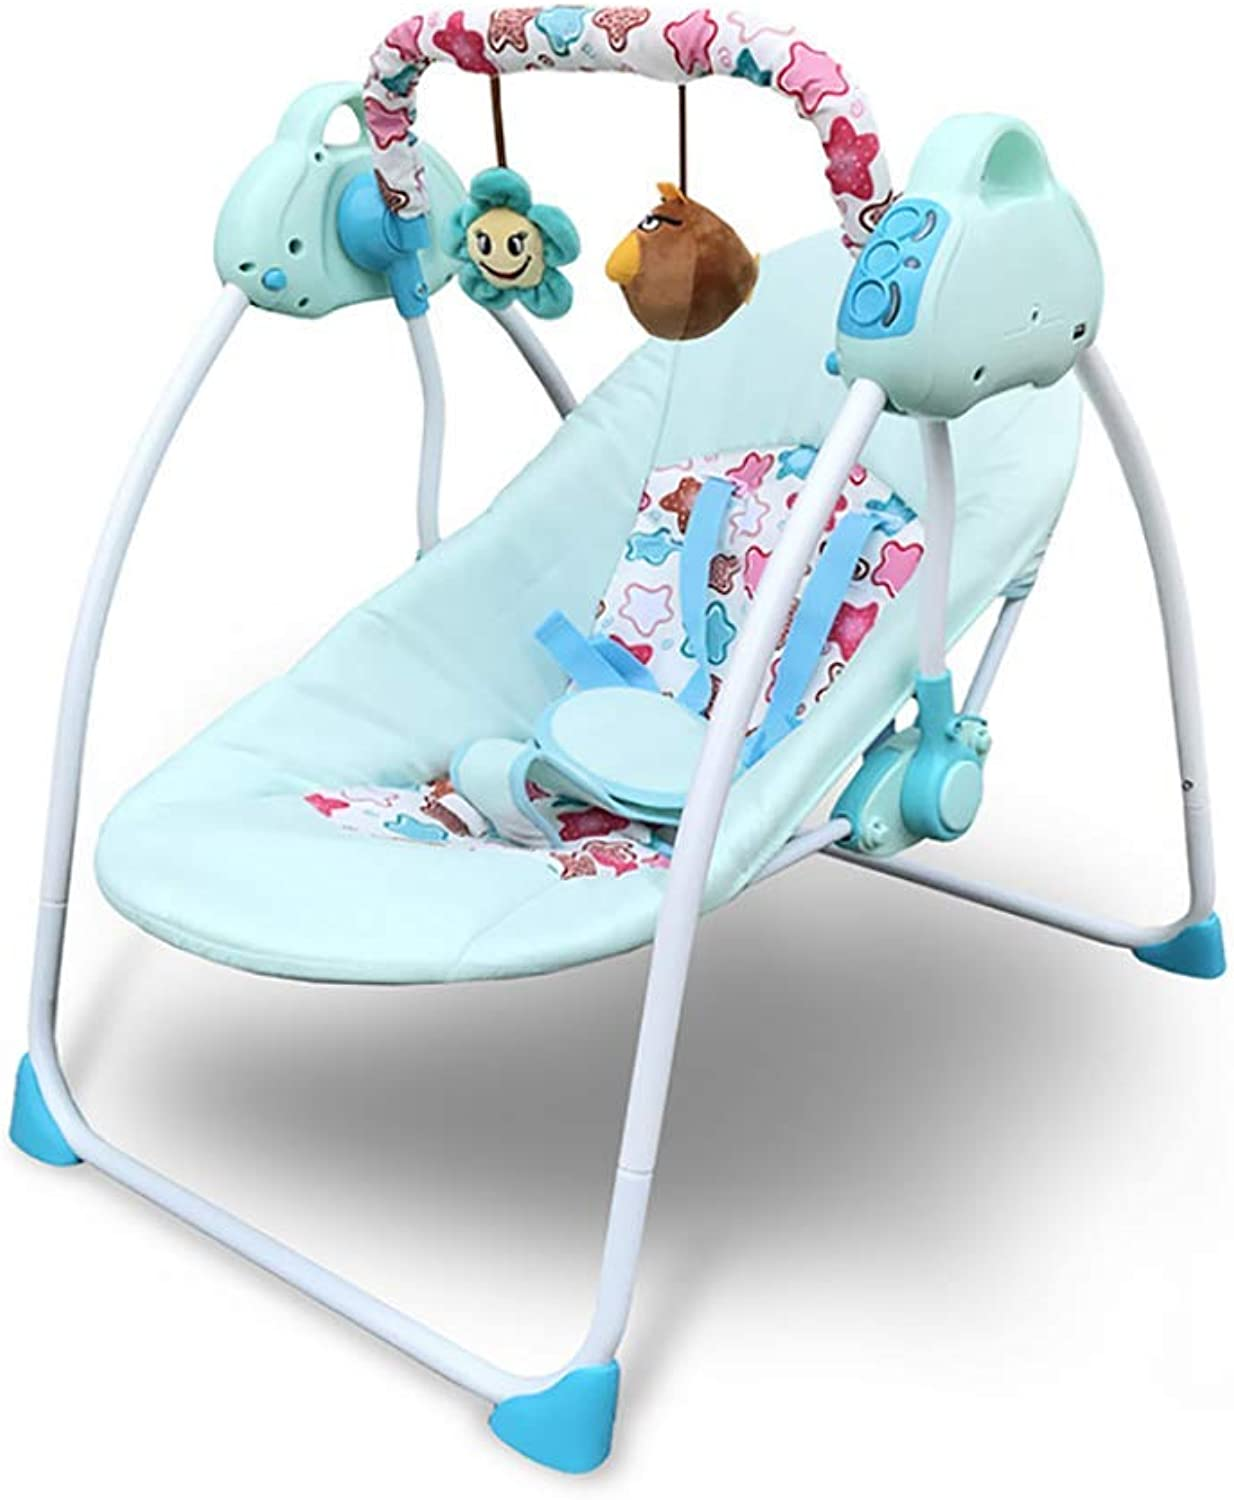 Crib Multifunctional Smart Electric Comfortable Breathable Cradle Recliner Suitable for Newborns 0-6 Years Old Baby Four Seasons Universal,bluee